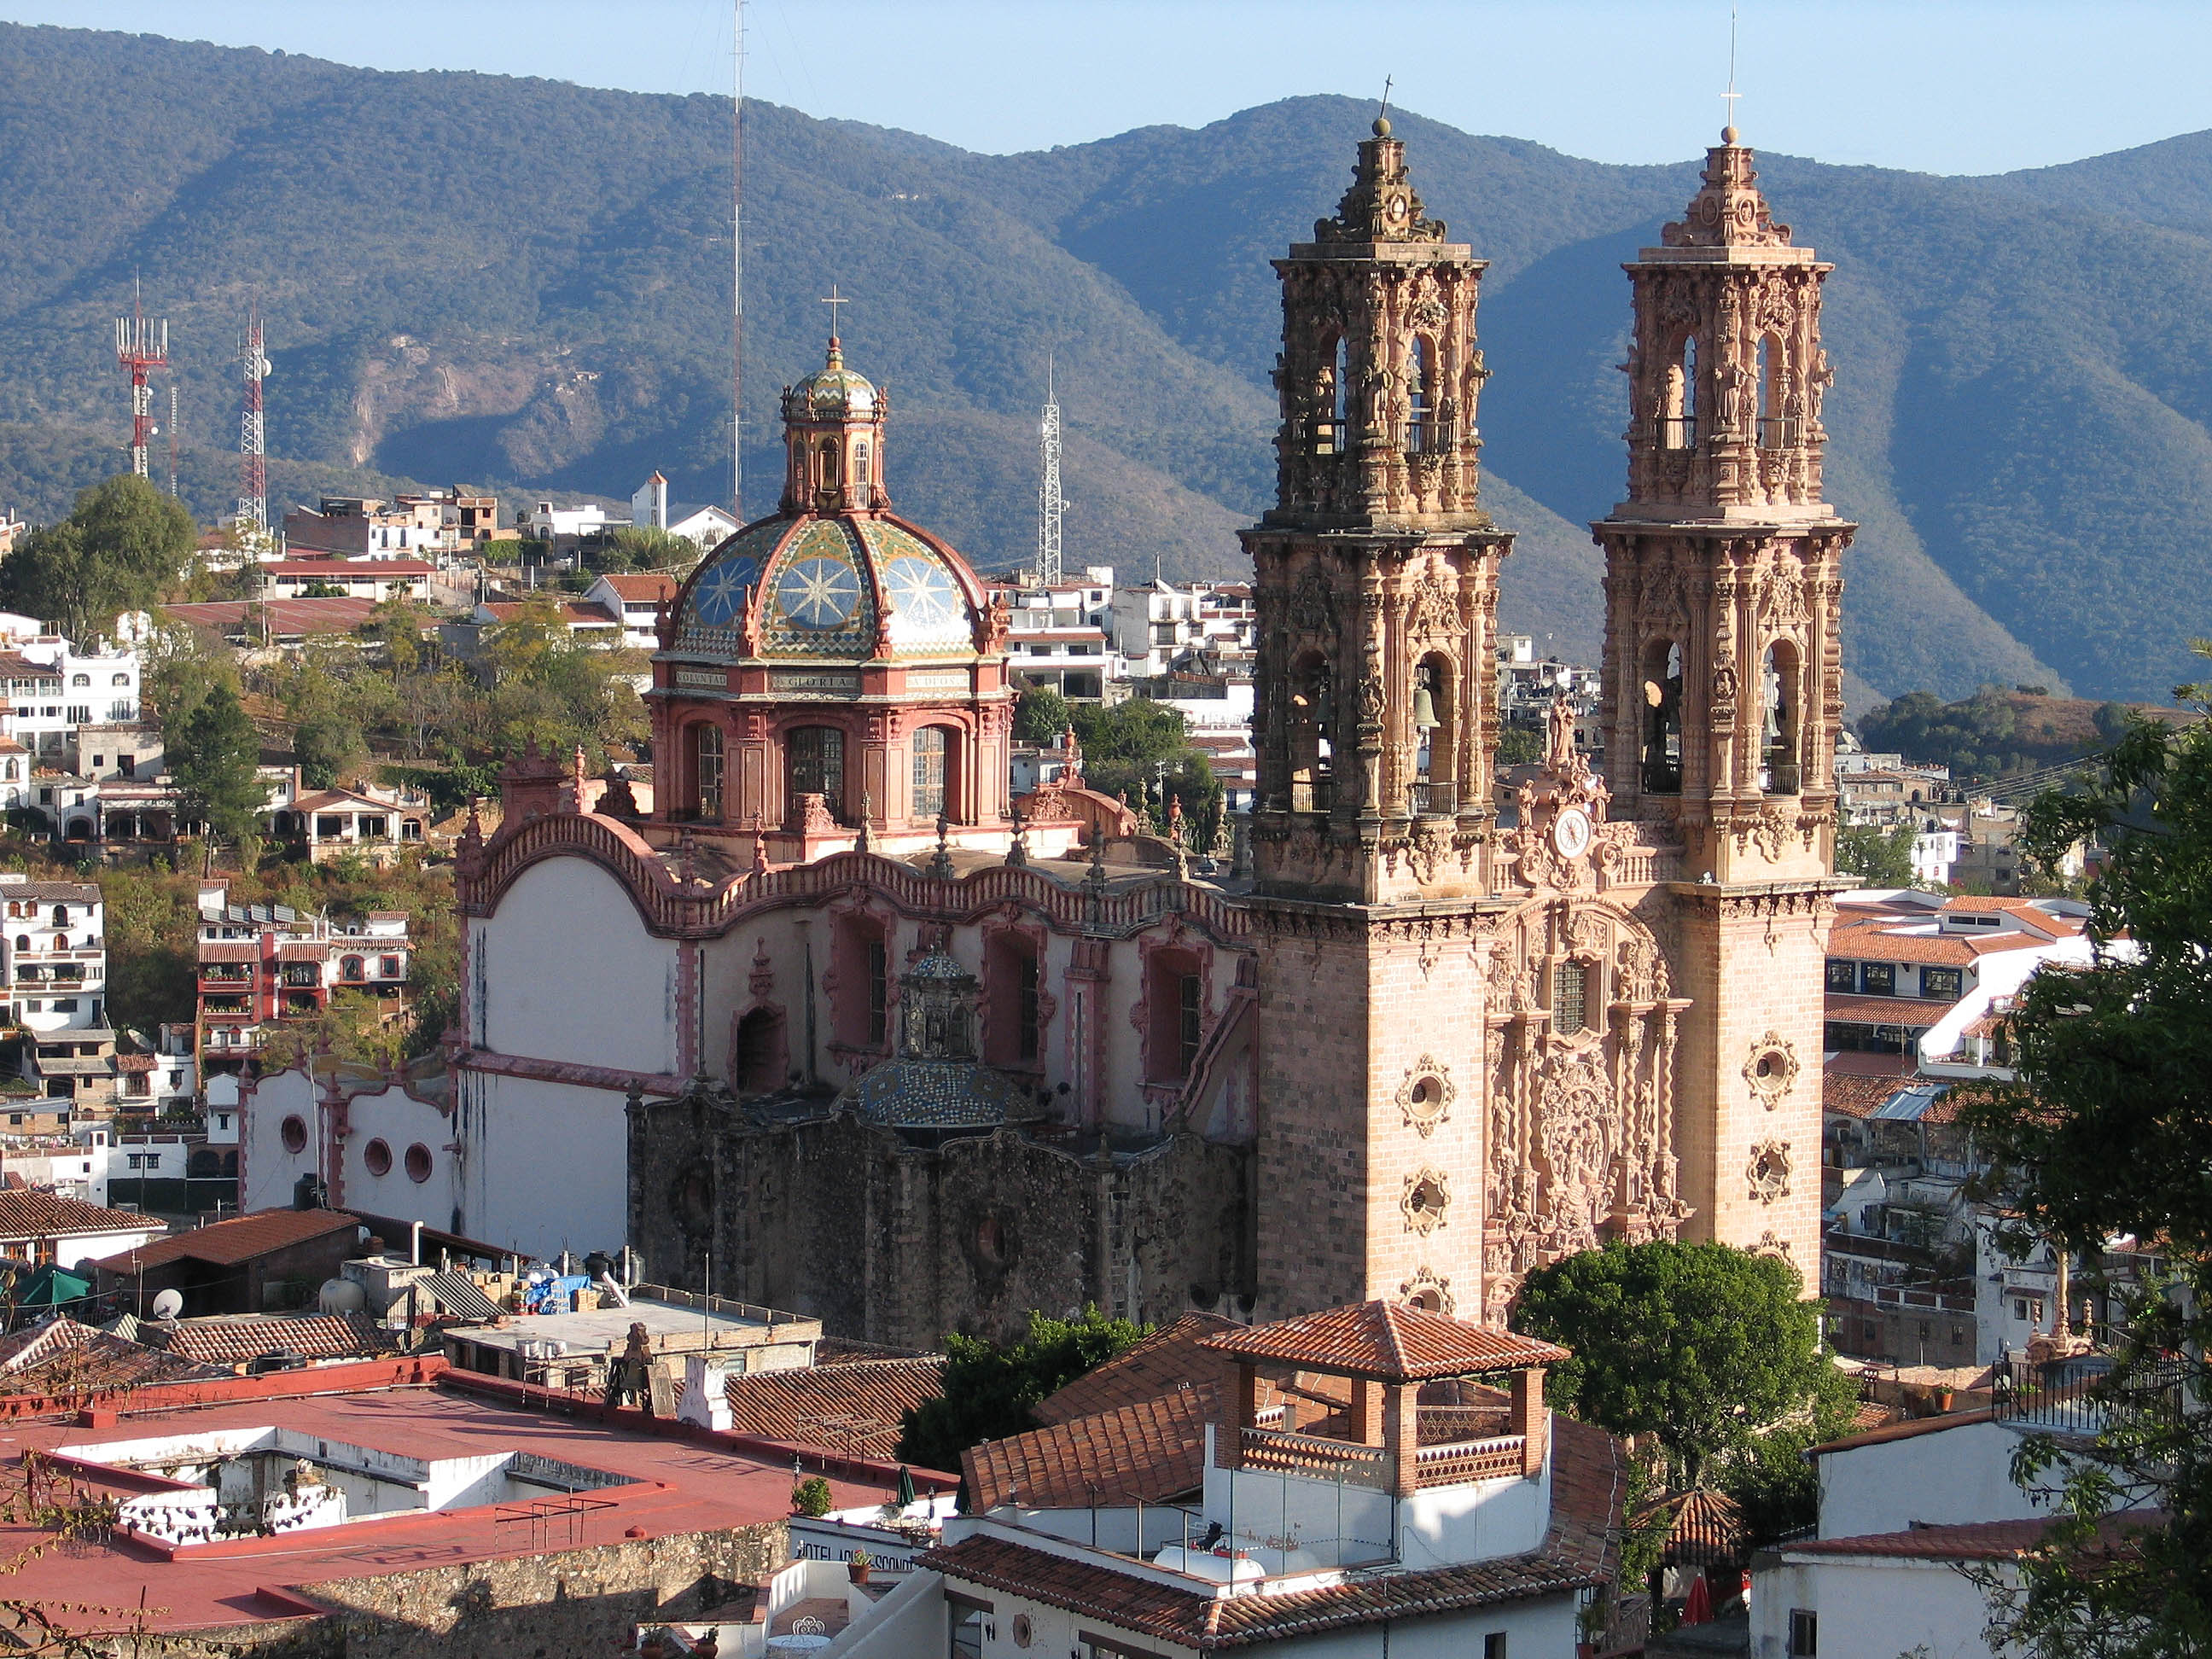 https://upload.wikimedia.org/wikipedia/commons/7/72/Taxco_Santa_Prisca